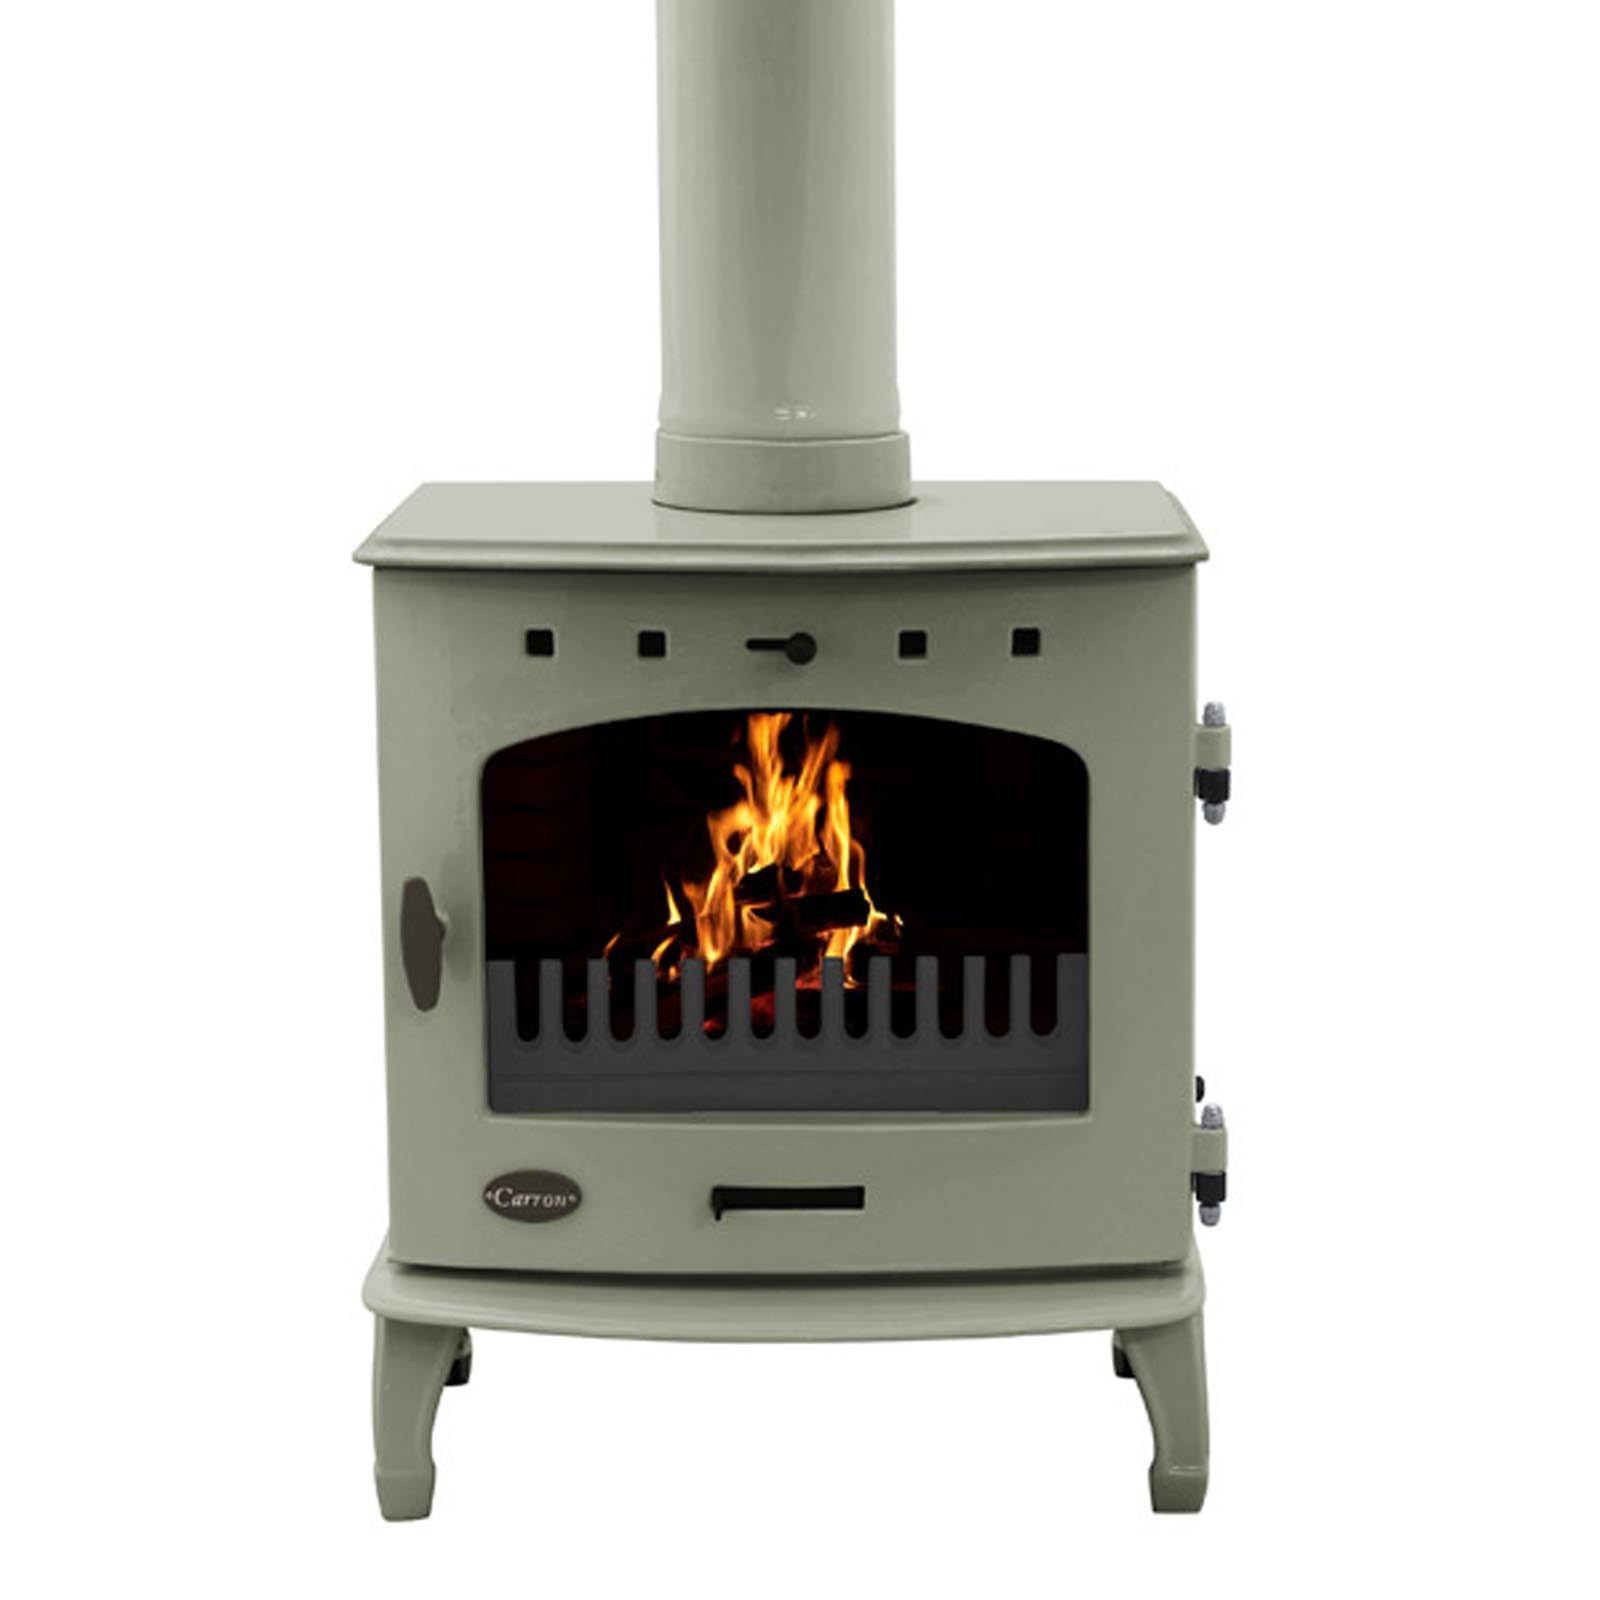 stunning enamel finish carron black enamel 7 3kw woodburning